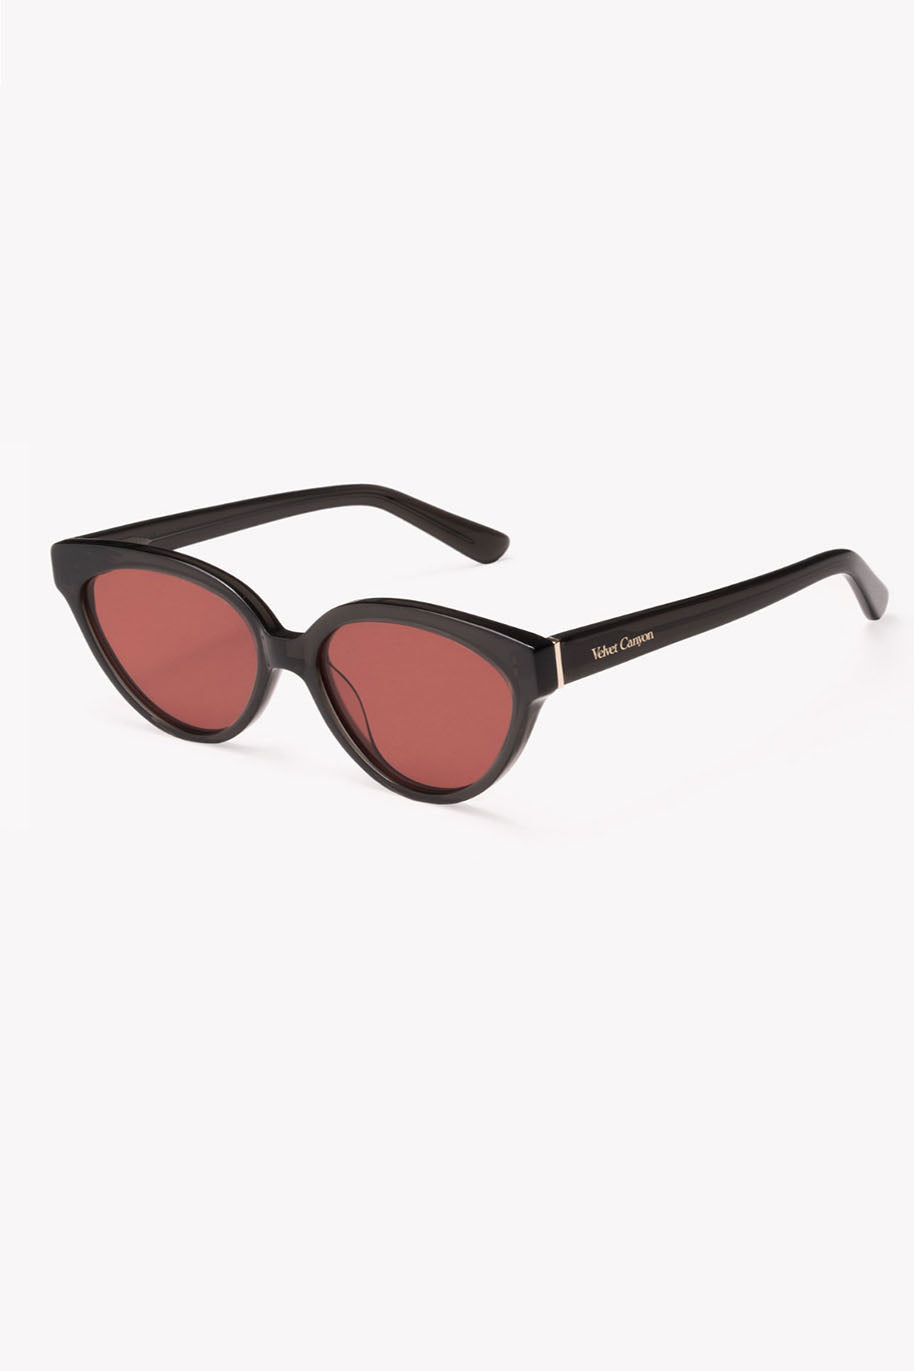 BEAT GENERATION SUNGLASSES - PLUM